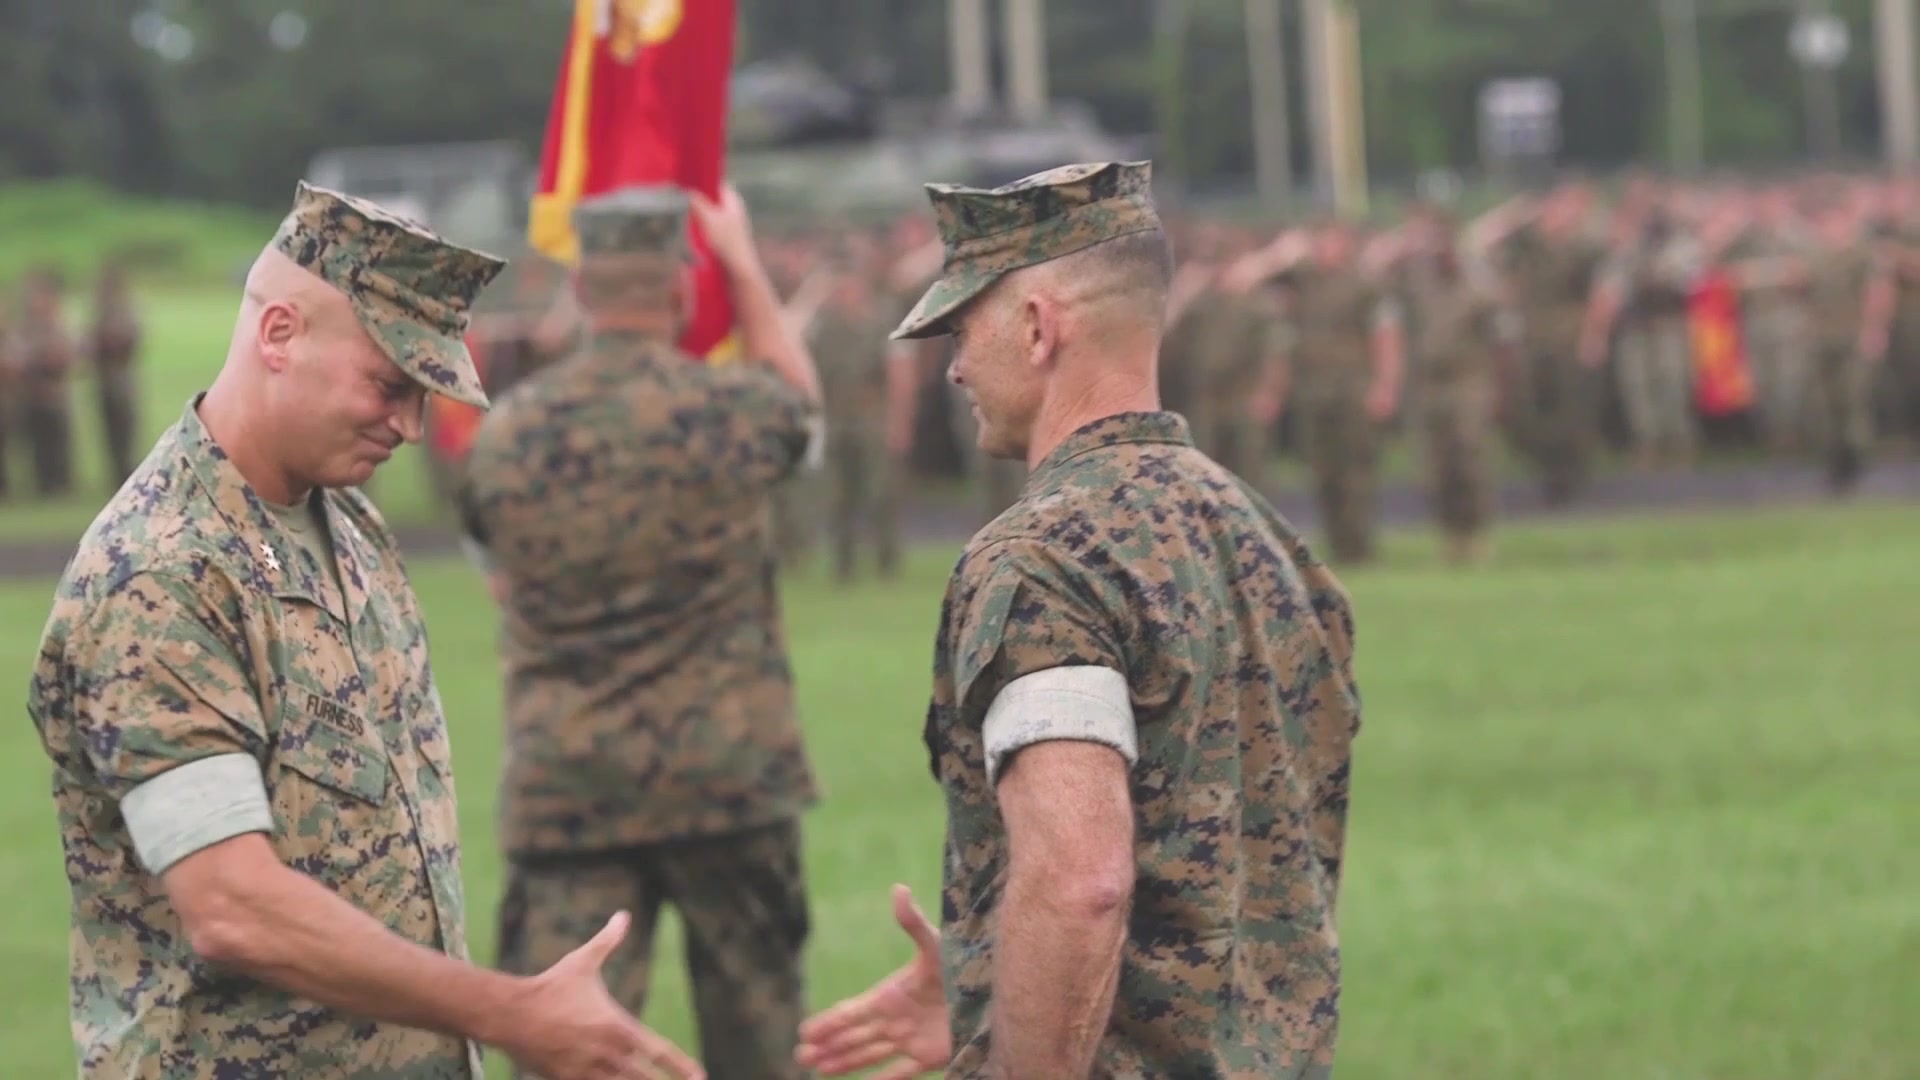 U.S. Marine Corps Major General David J. Furness, Commanding General of 2d Marine Division (MARDIV) reflects on his time at 2d MARDIV at Camp Lejeune, North Carolina, May 28, 2020. Reflections on Command is a video series of Furness' time as the 2d MARDIV CG, leading up to his Change of Command. (U.S. Marine Corps video by Lance Cpl. Sydney Smith)